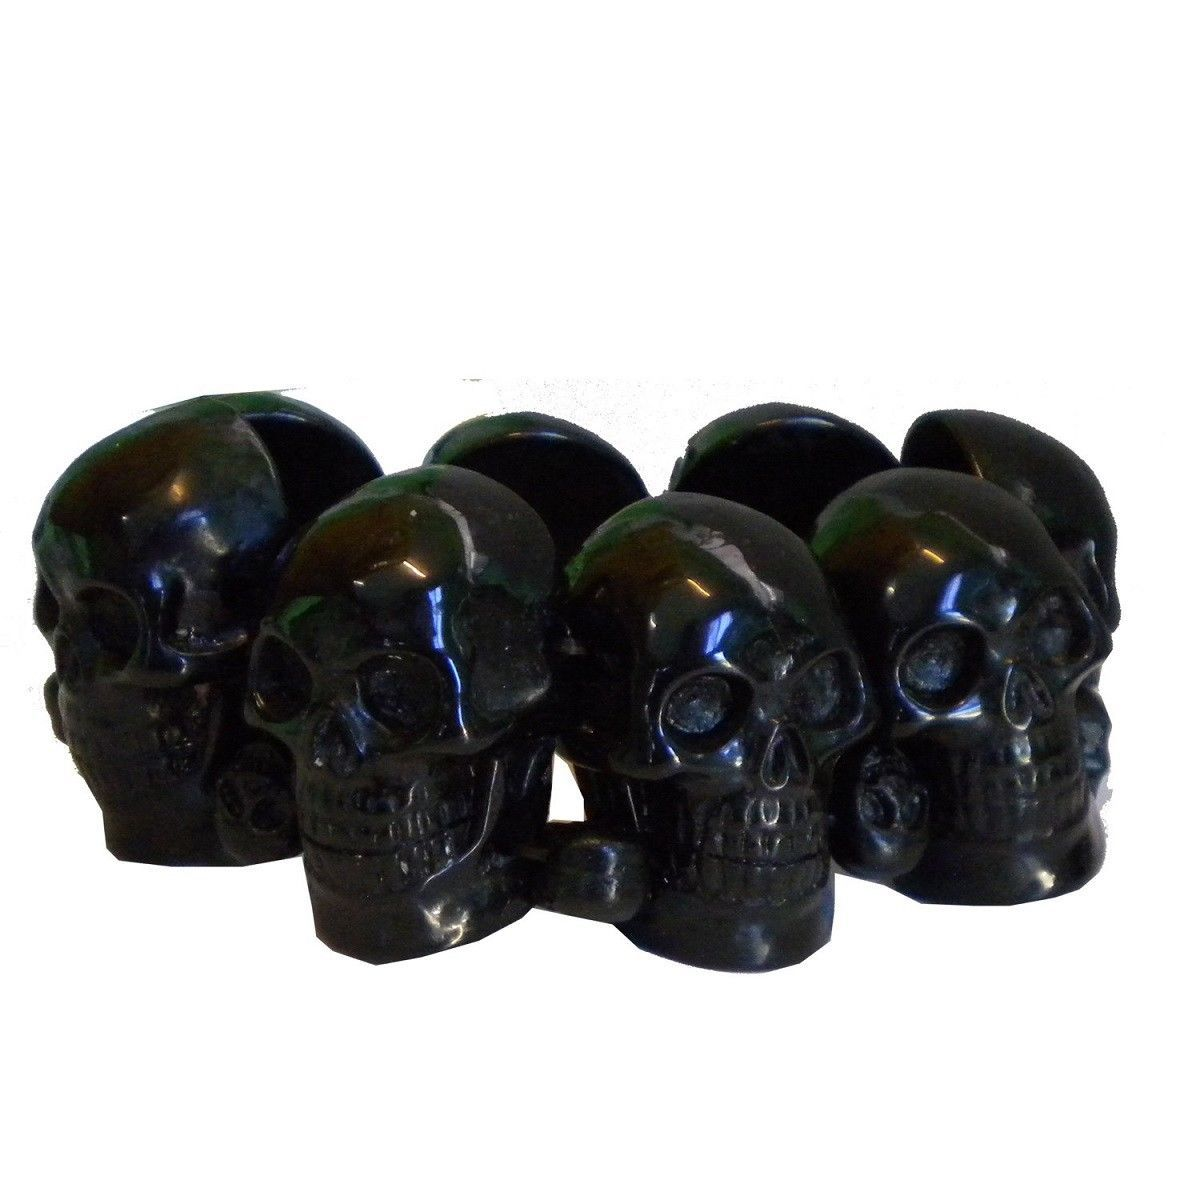 Kreepsville 666 Black Skull Collection Bracelet Bracelet Puck Rock Halloween Fun